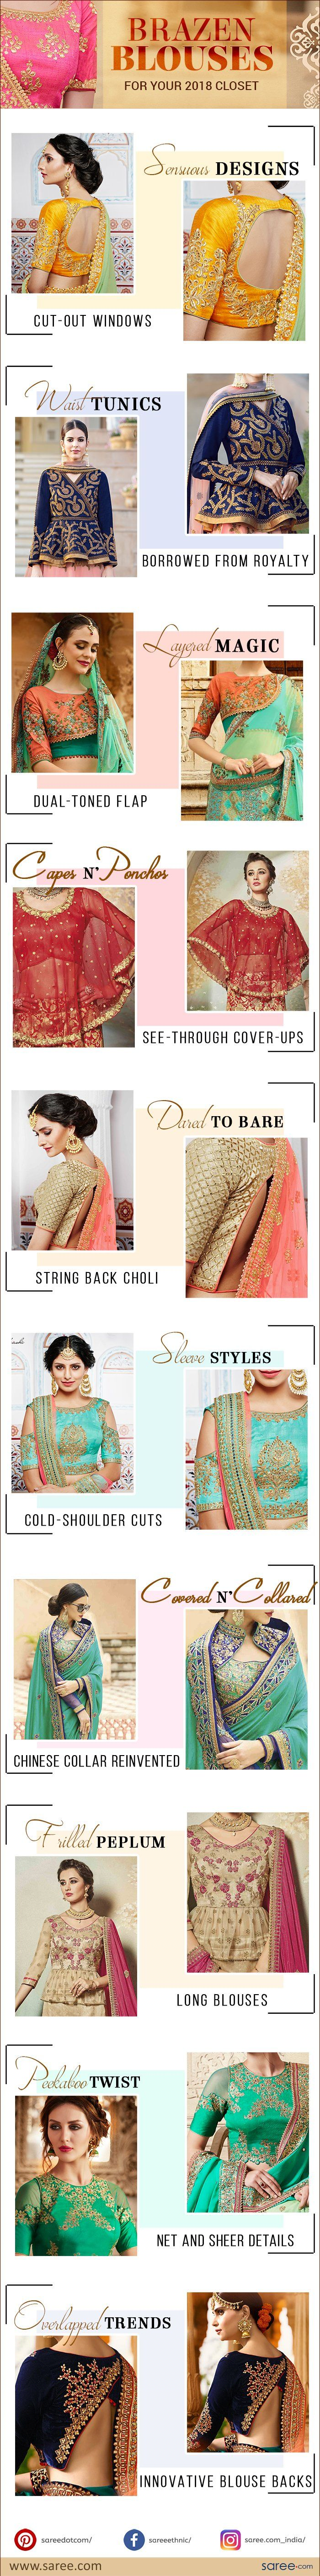 10 Chic and Stylish Saree Blouse Designs for 2018 - Infographic